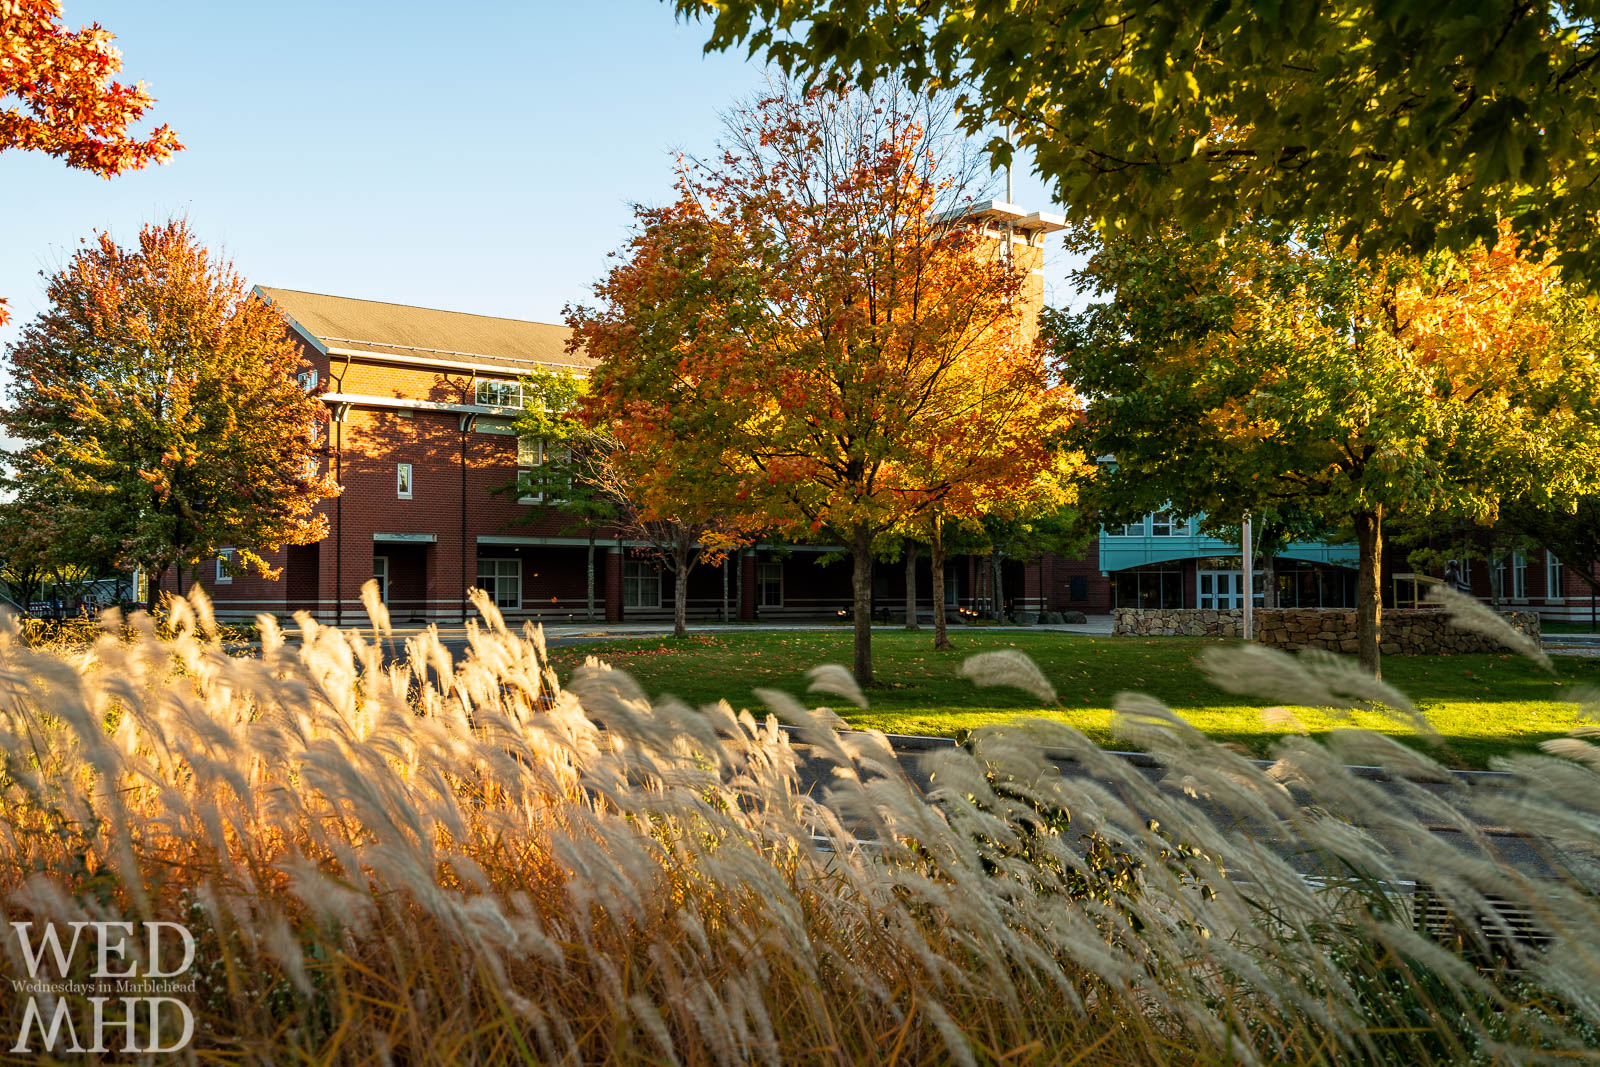 Grass is captured blowing in the wind with trees displaying their foliage in front of Marblehead High School